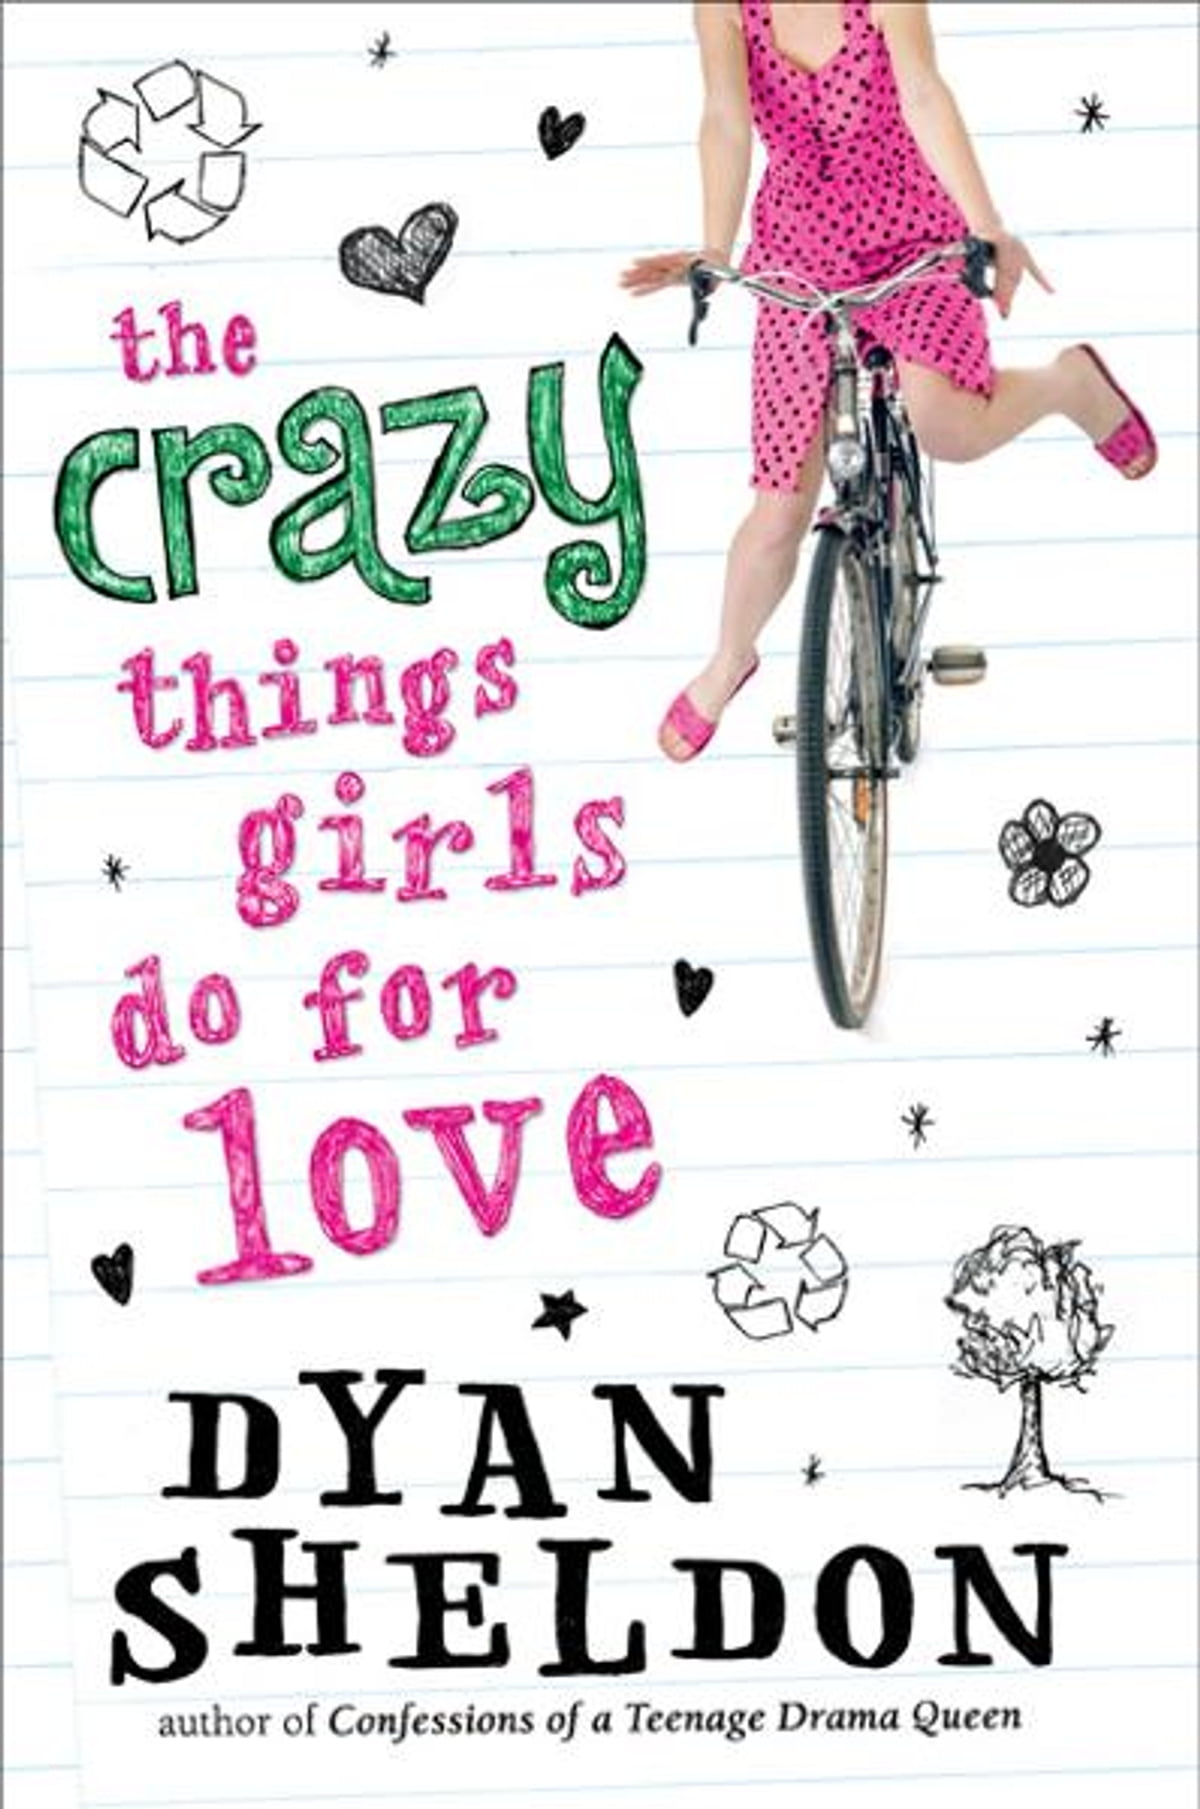 The crazy things girls do for love ebook by dyan sheldon the crazy things girls do for love ebook by dyan sheldon 9780763656263 rakuten kobo fandeluxe Ebook collections